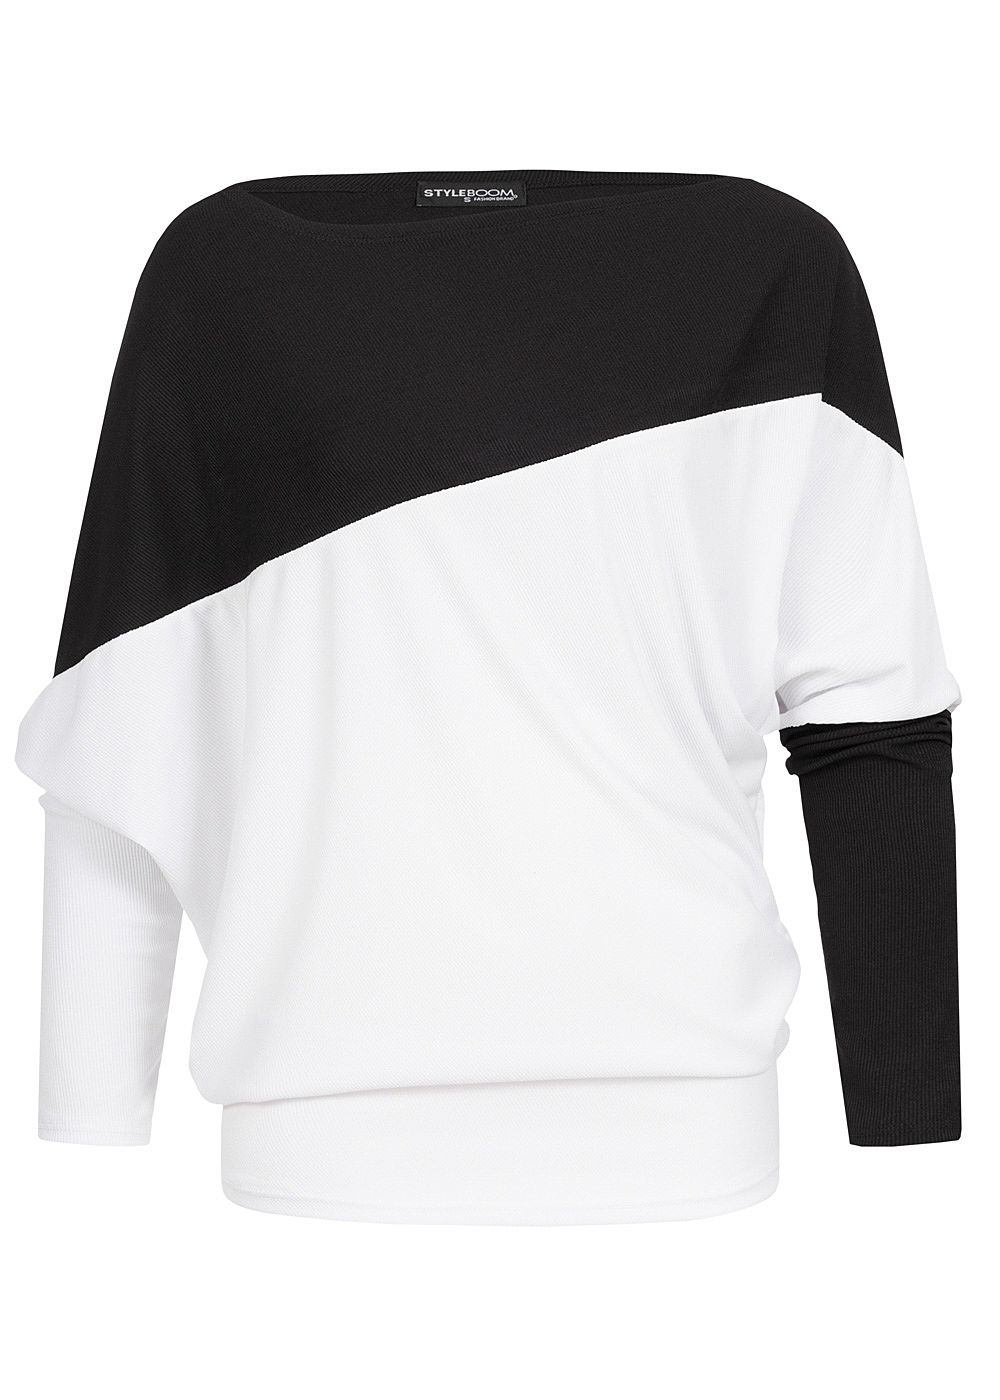 Styleboom Fashion Damen Oversized Fledermausärmel Shirt schwarz weiss - Art.-Nr.: 19106772